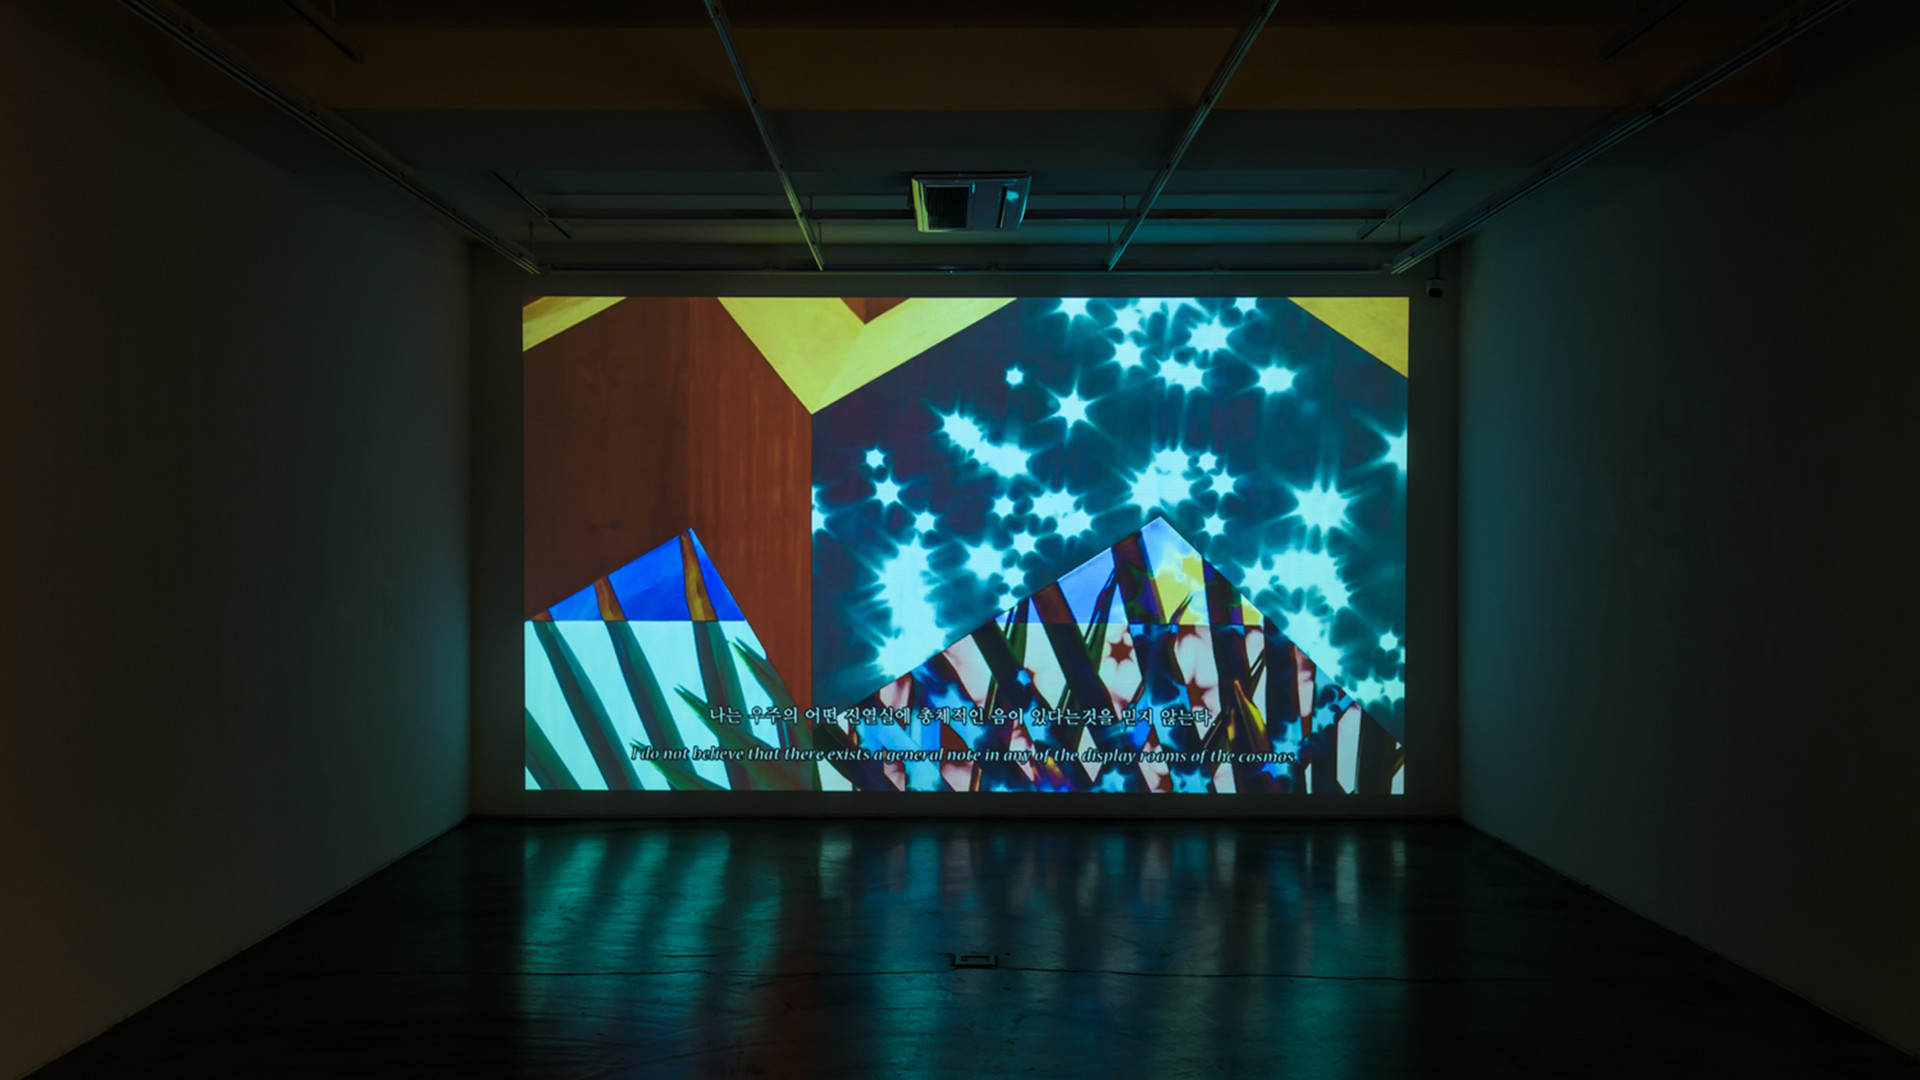 Sojung Jun, Installation view of The Logic of Sensation, Gallery Simon, 2017